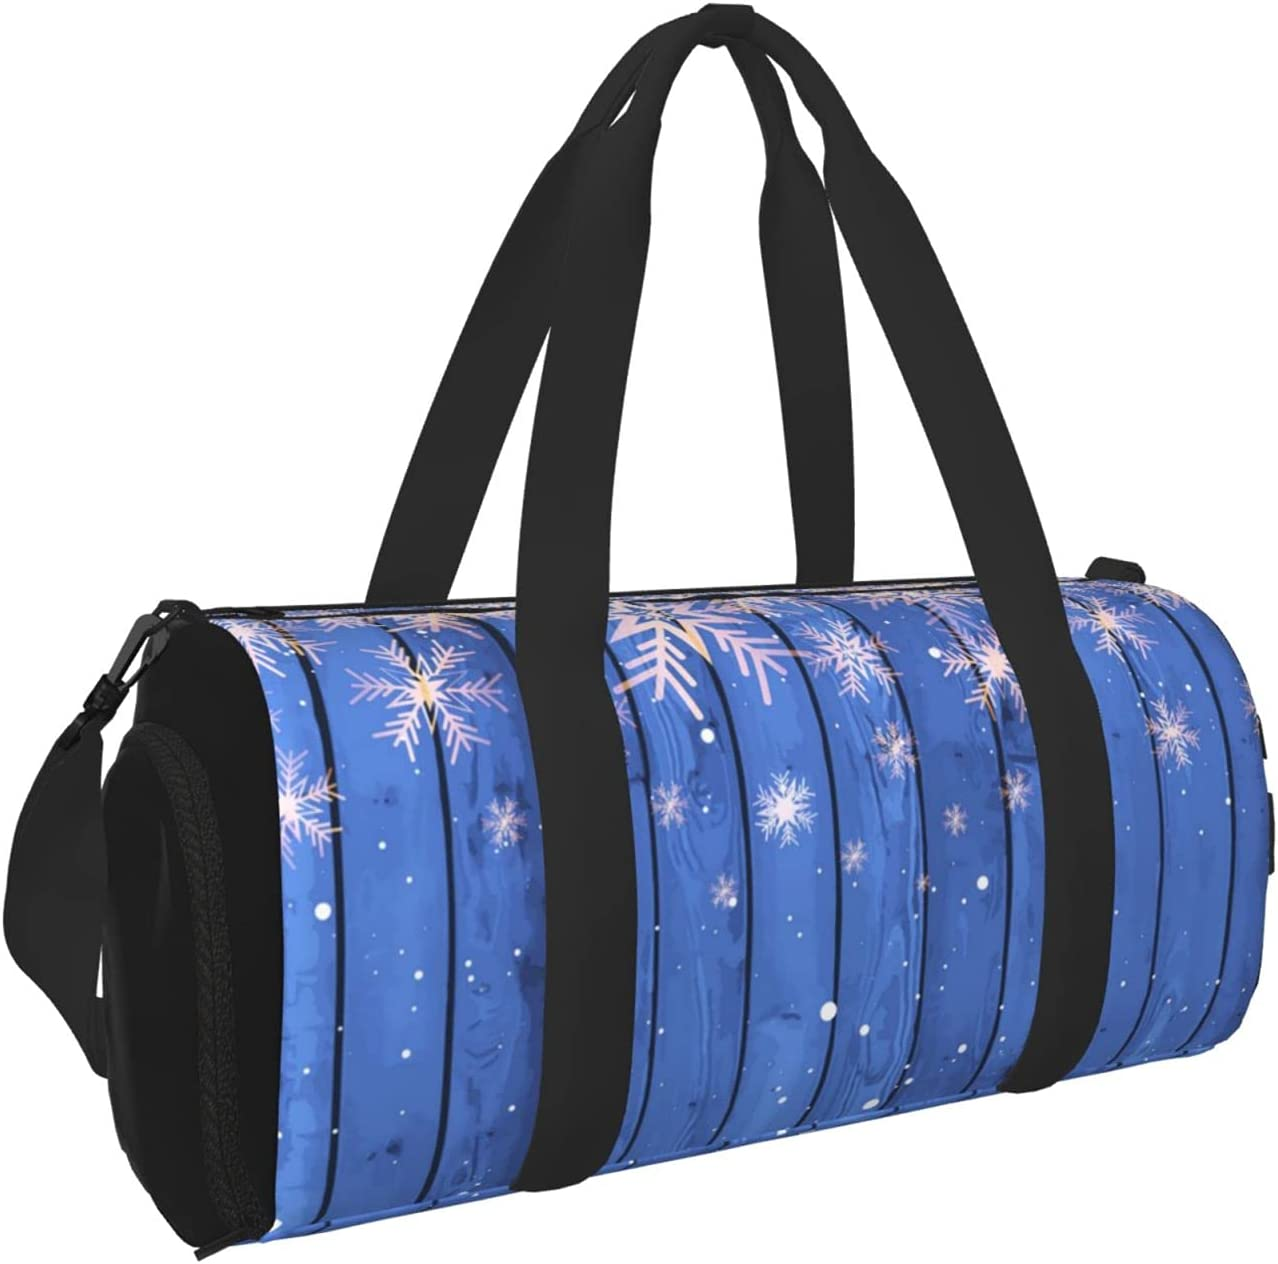 rerw Gym Bag Max 70% OFF with Shoes Compartment Dry Wet Ranking TOP8 Separation 3D Gold